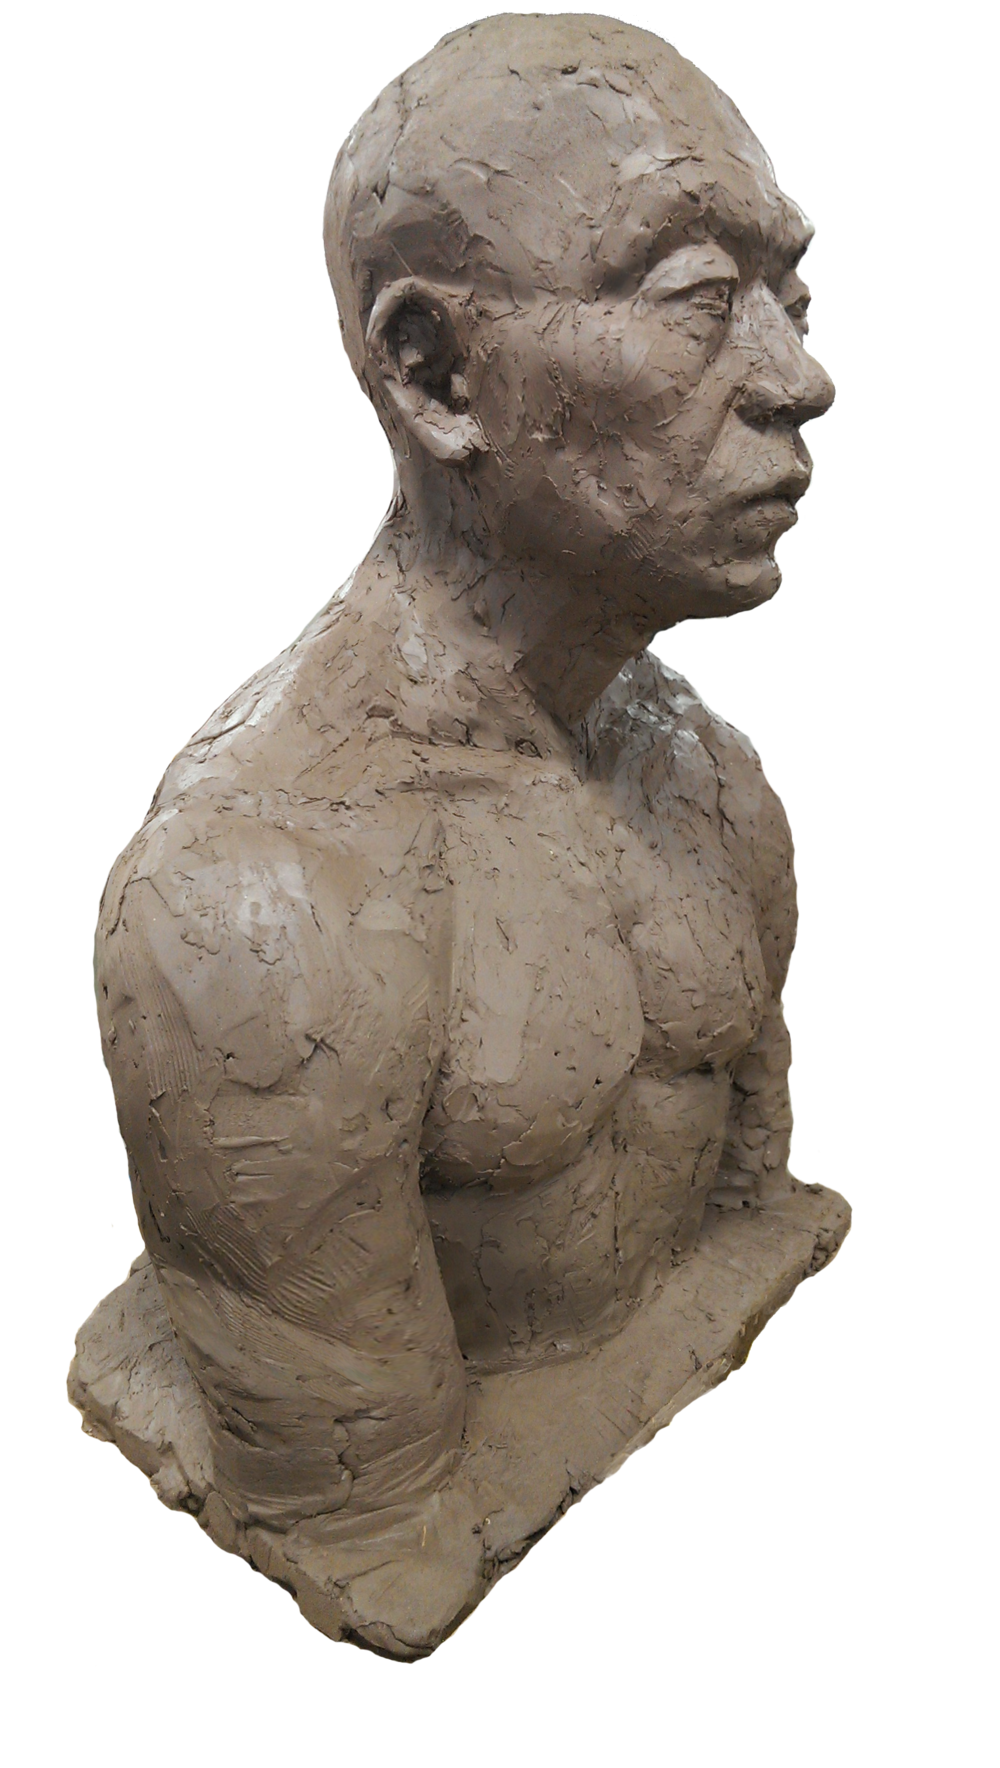 "<Figures of My Colleagues>  250*400""600mm, 400*400mm, 310*400mm  September, 2015  Clay"